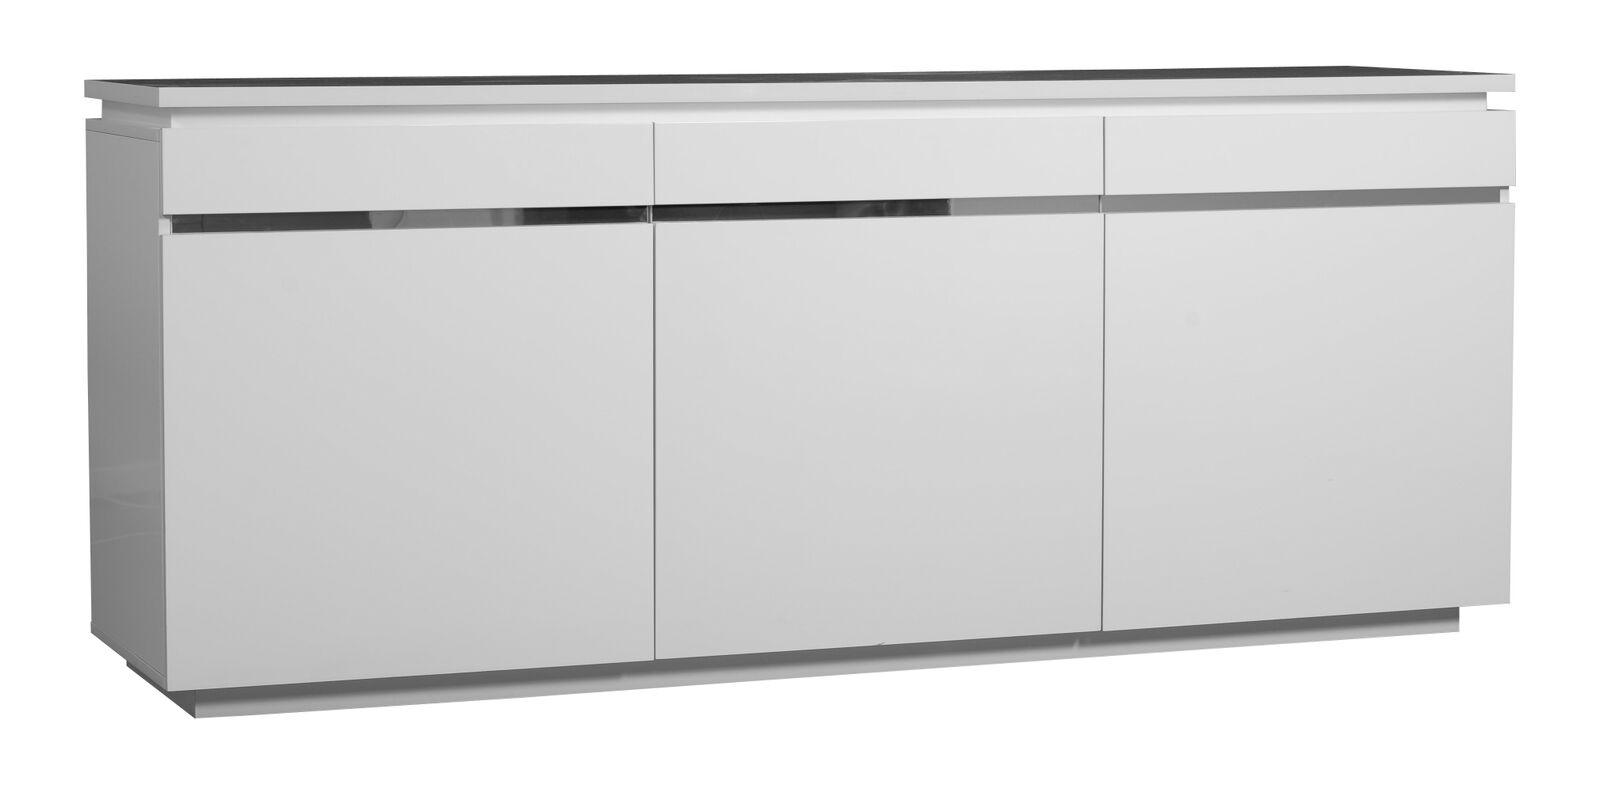 Logan Sideboard White High Gloss 3 Door With Lights | Sideboards | Fads with regard to Logan Sideboards (Image 14 of 30)